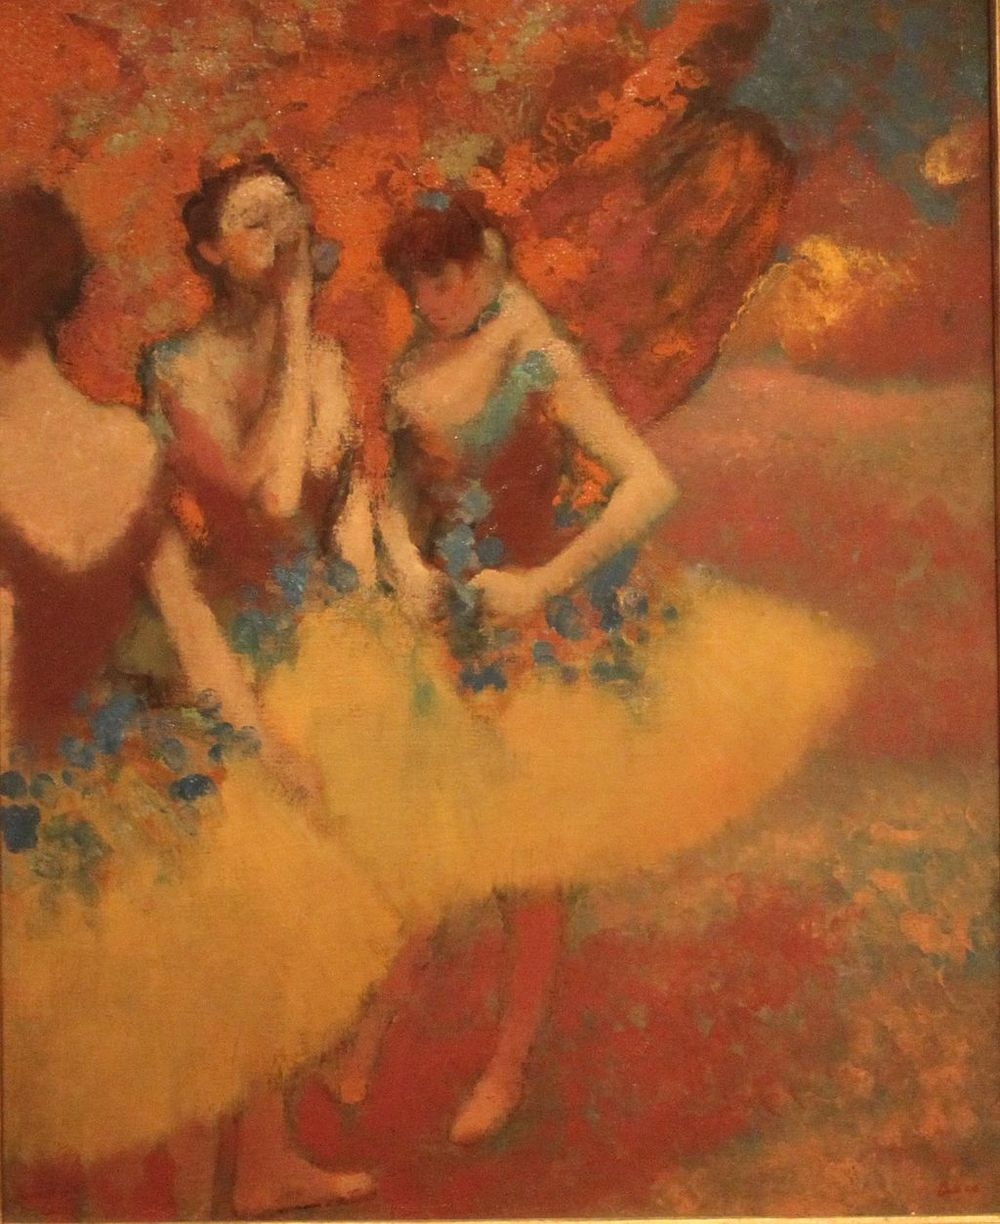 Edgar Degas, Three Dancers in Yellow Skirts, c. 1891, The Detroit Institute of Arts.